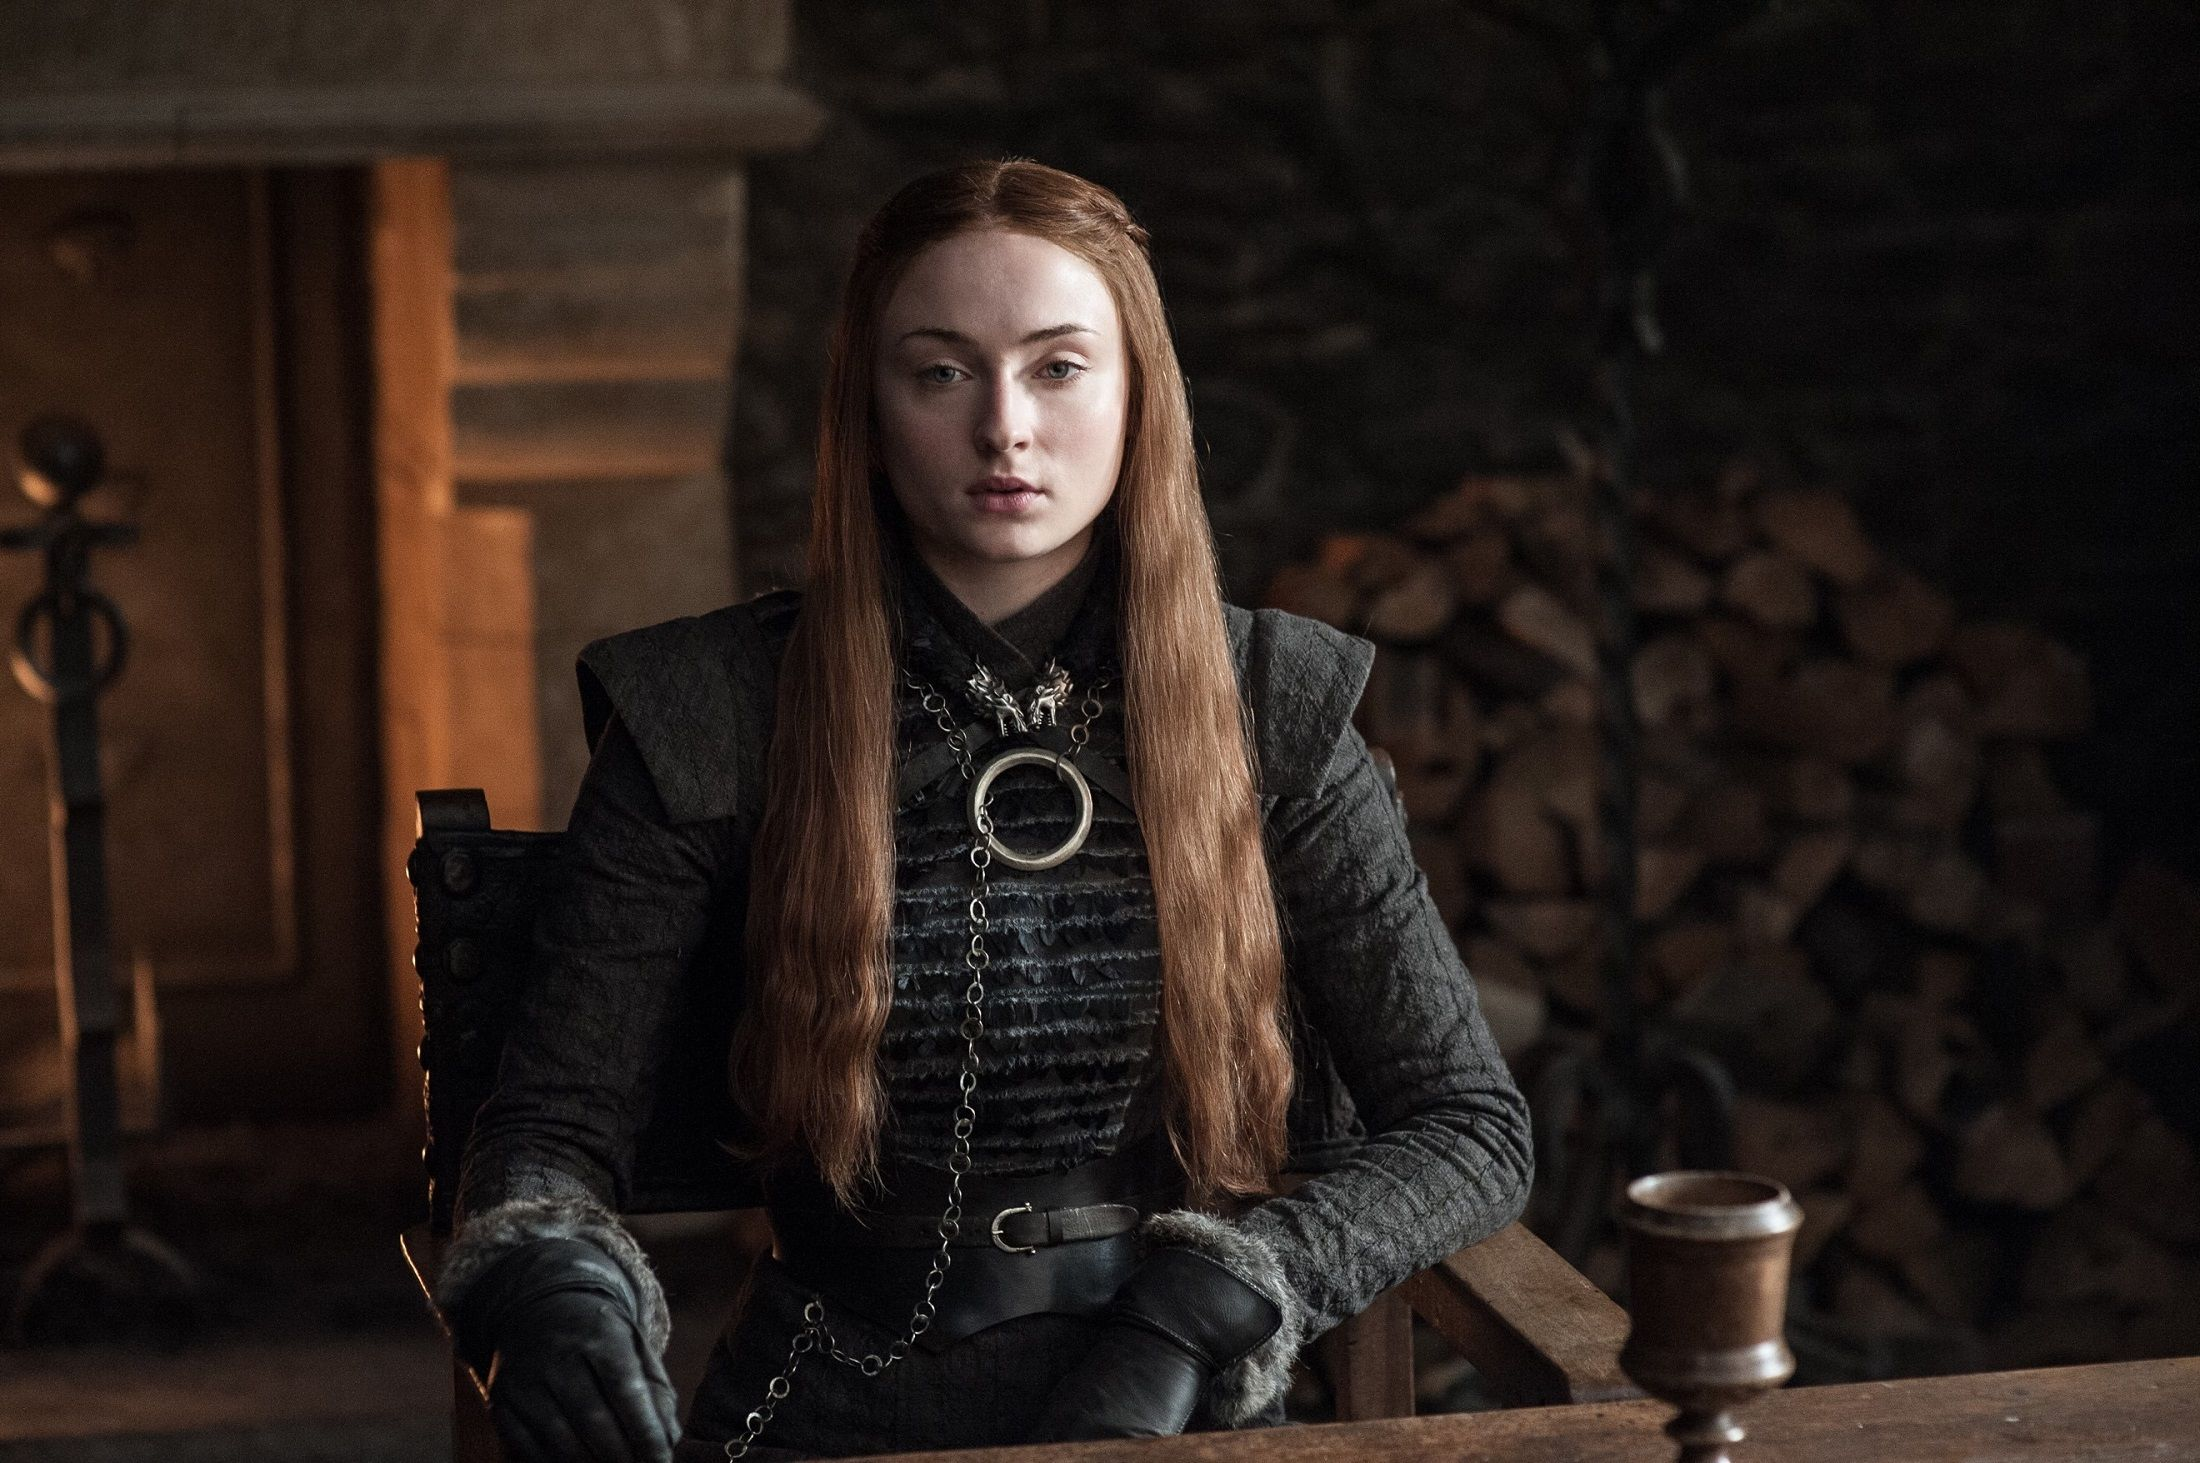 Sophie Turner Discusses A Tense Sibling Relationship Dragonstone Is A Huge Success In Another Area Sansa Stark Dress Game Of Thrones Costumes Sansa Stark